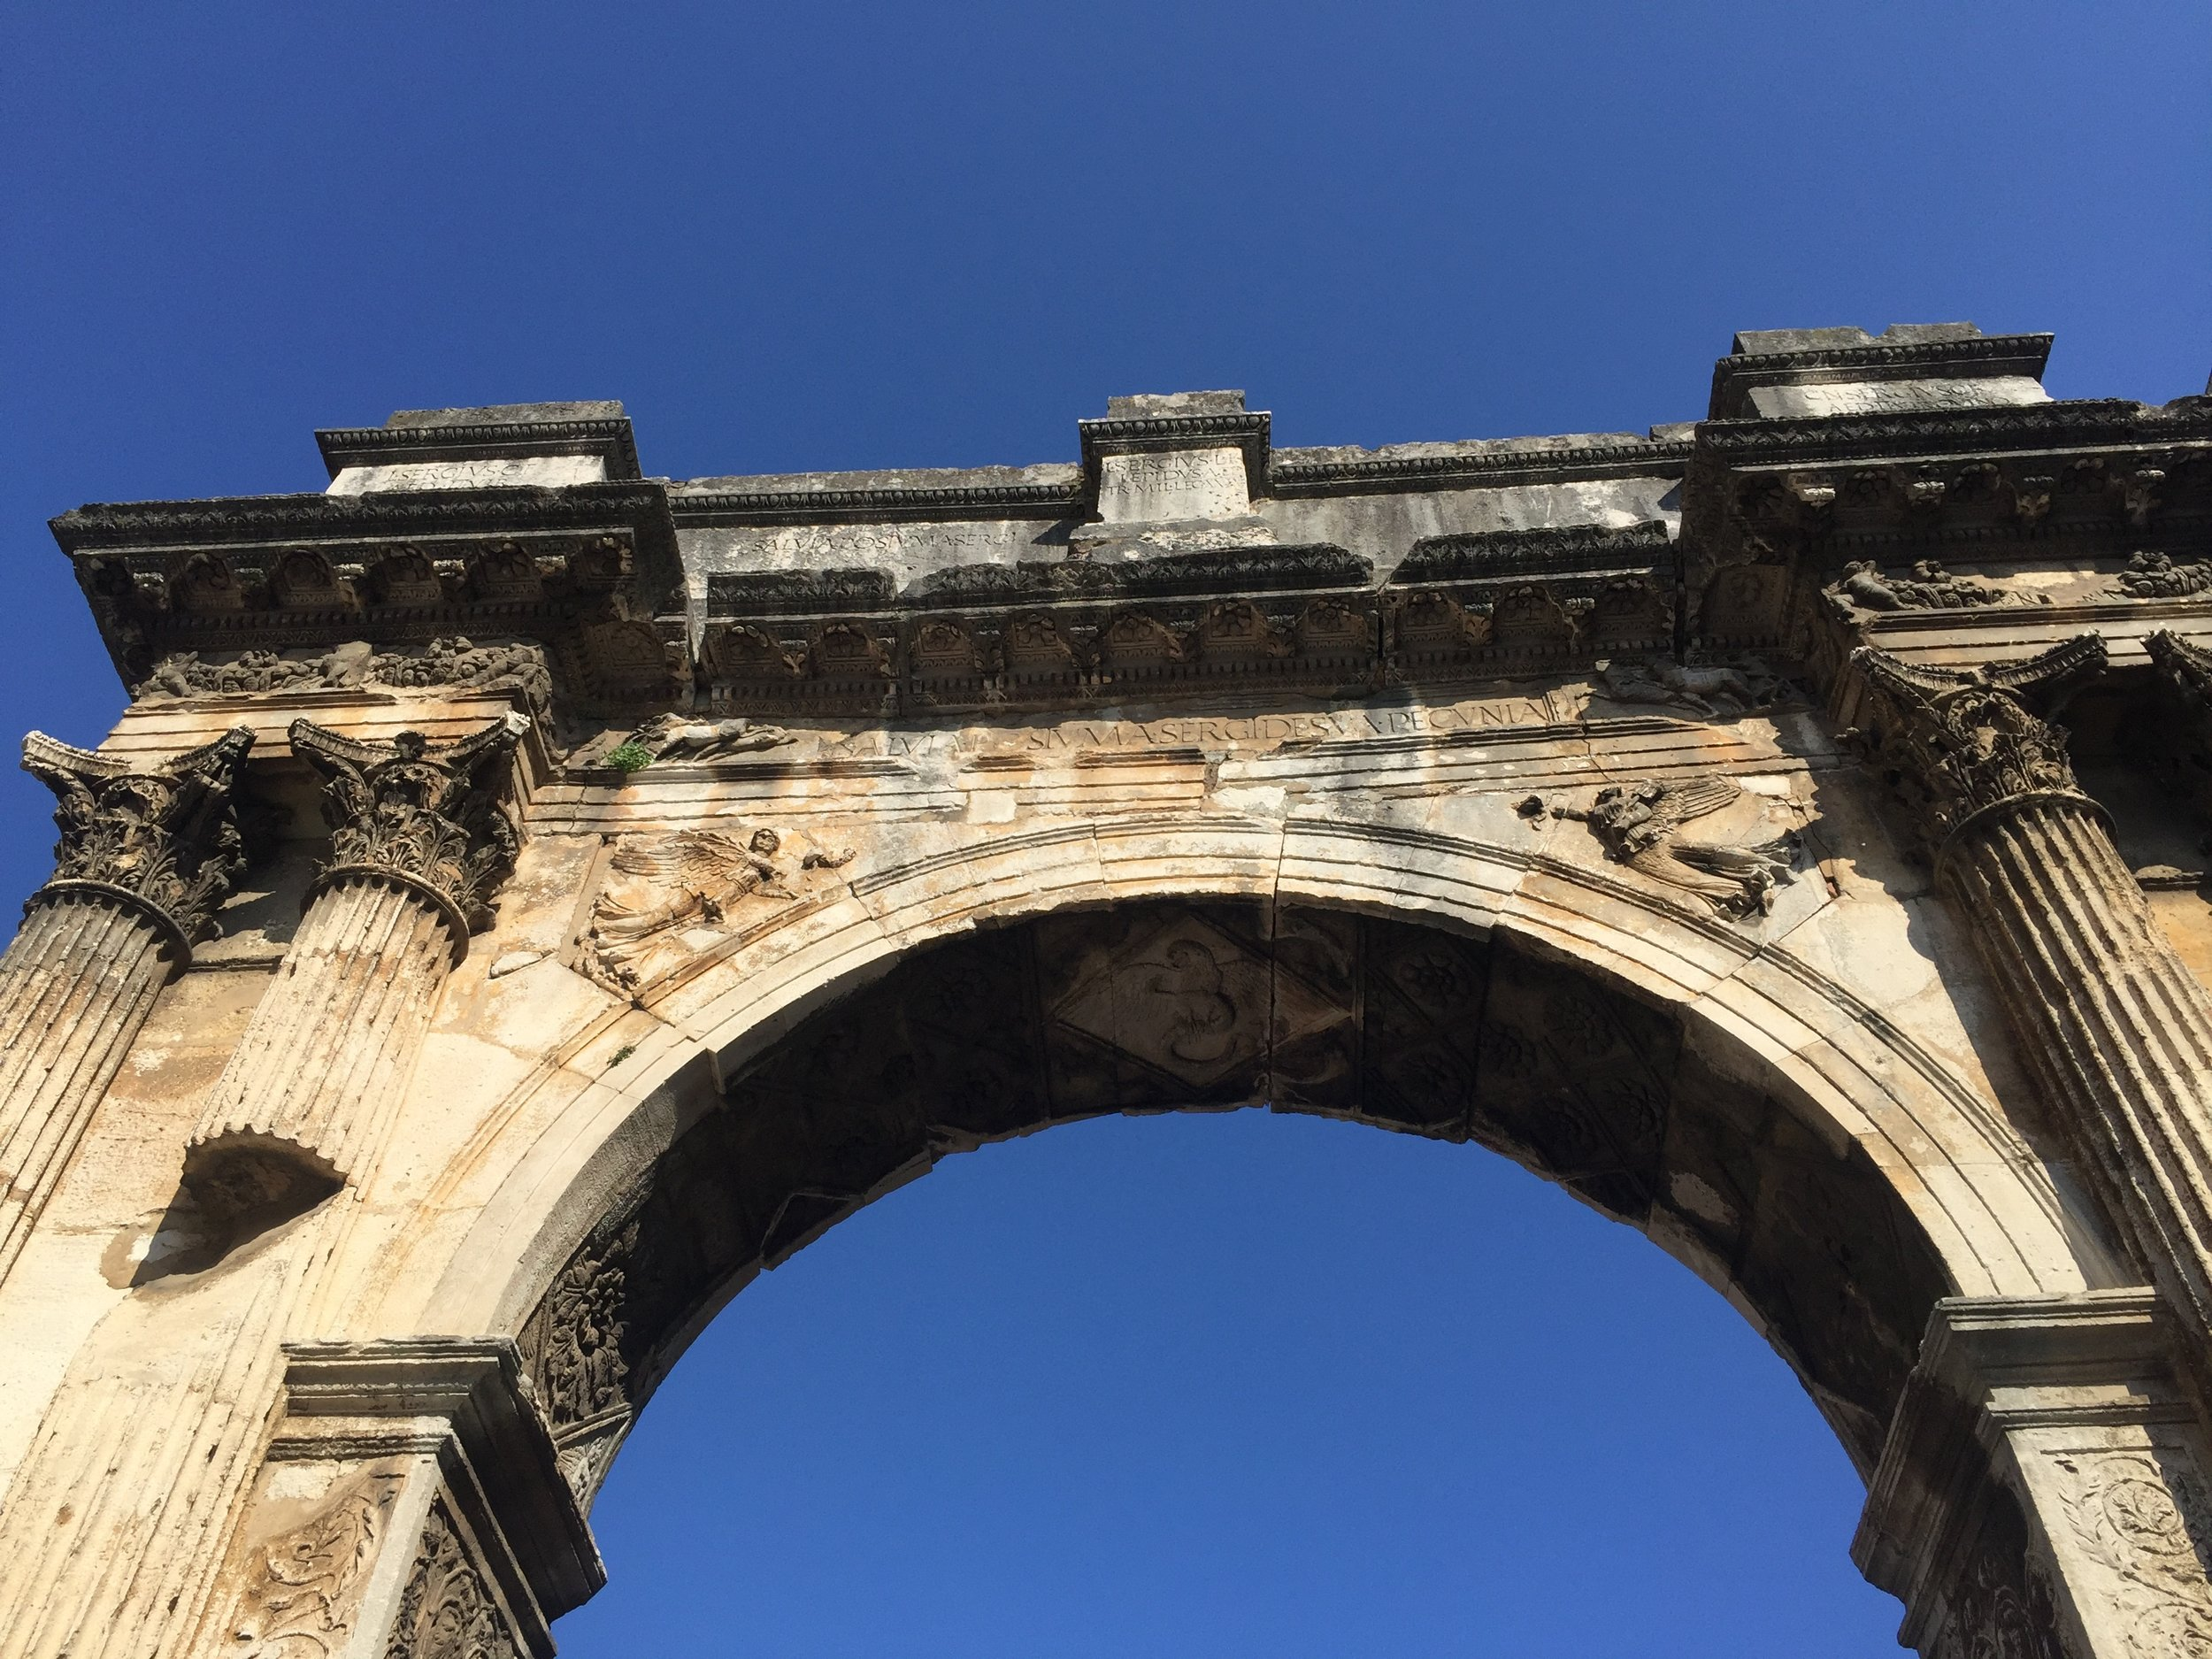 Roman Arch of the Sergeii, built c. 29-27 BC.